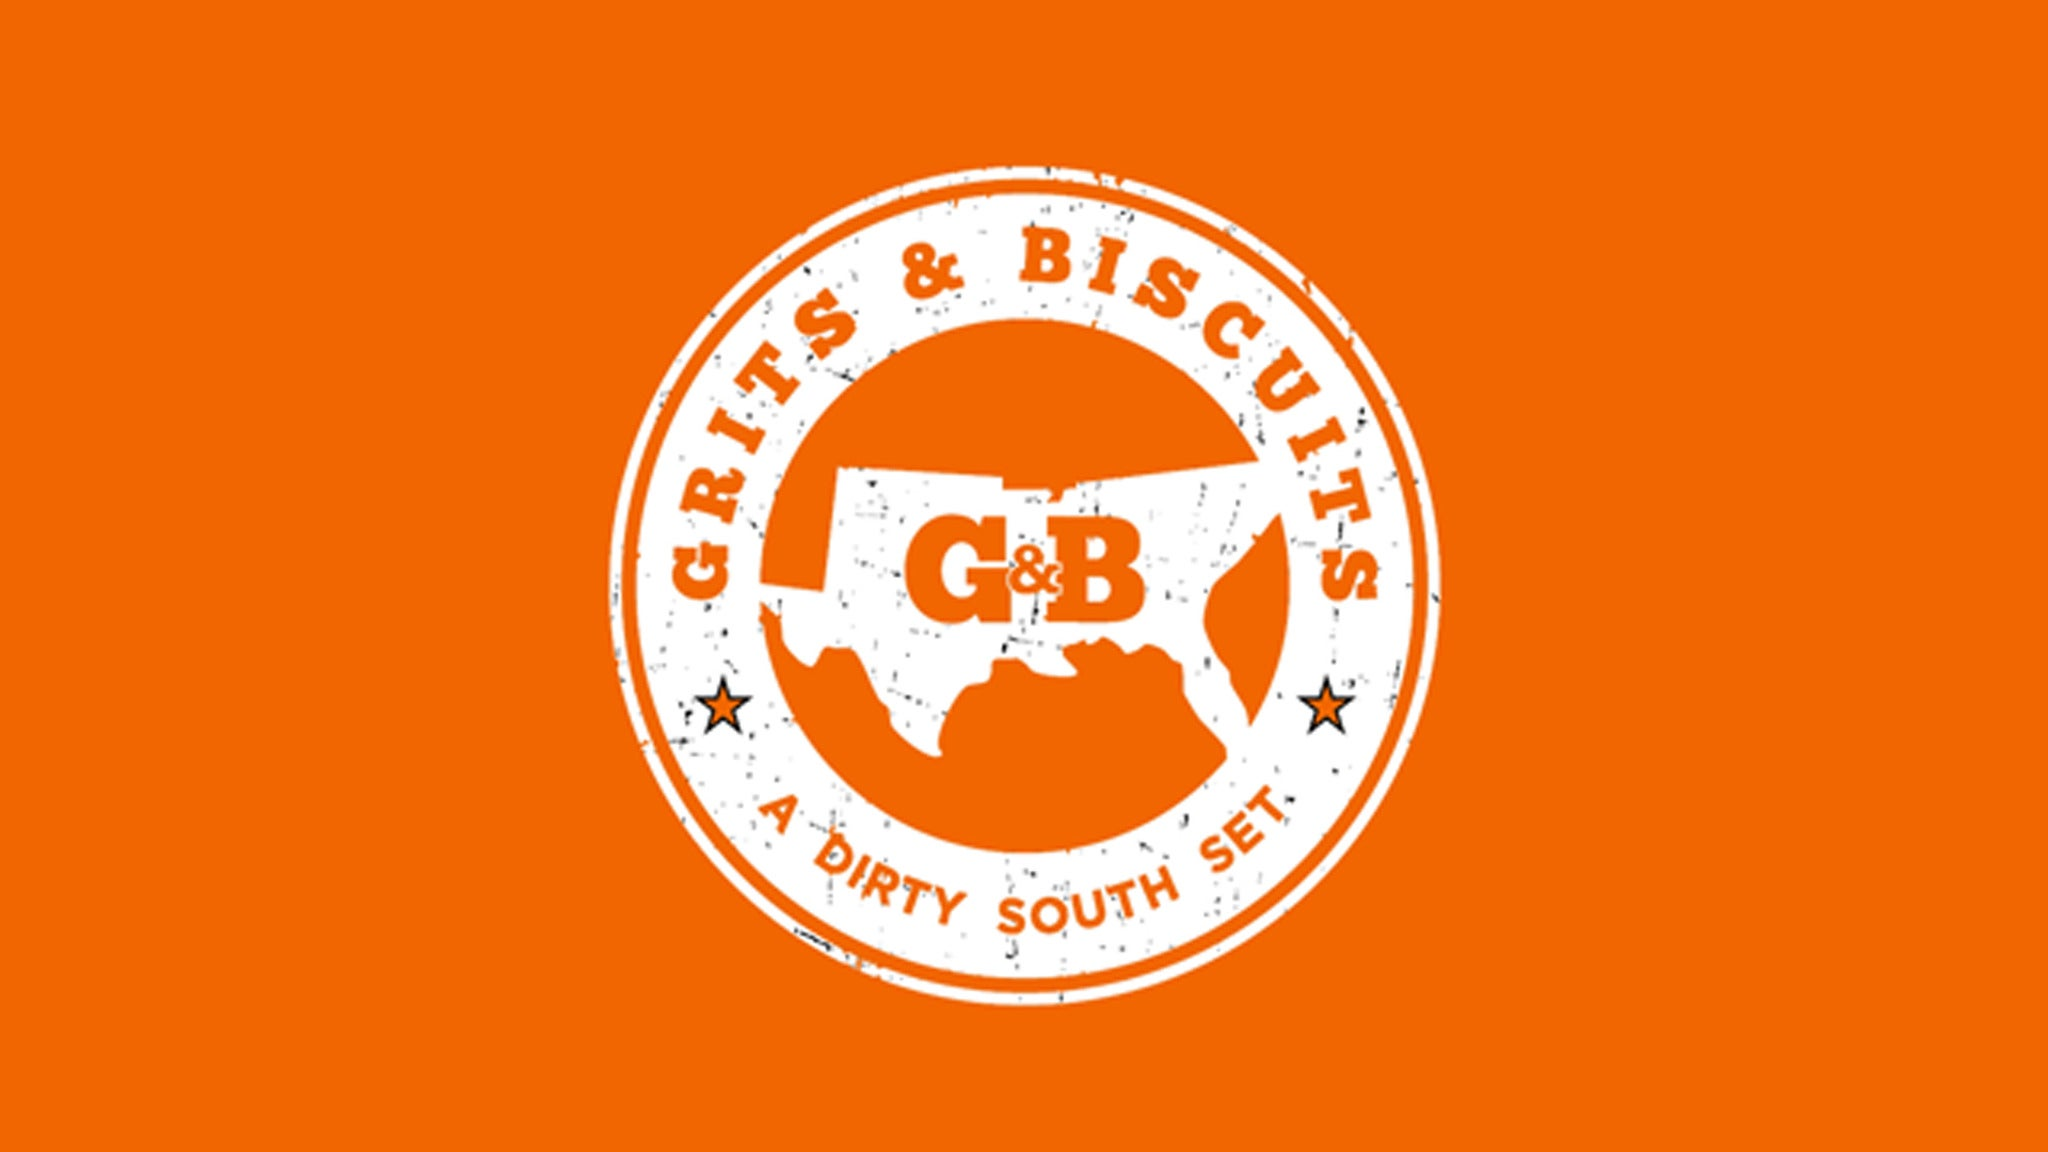 Grits & Biscuits at House of Blues Houston